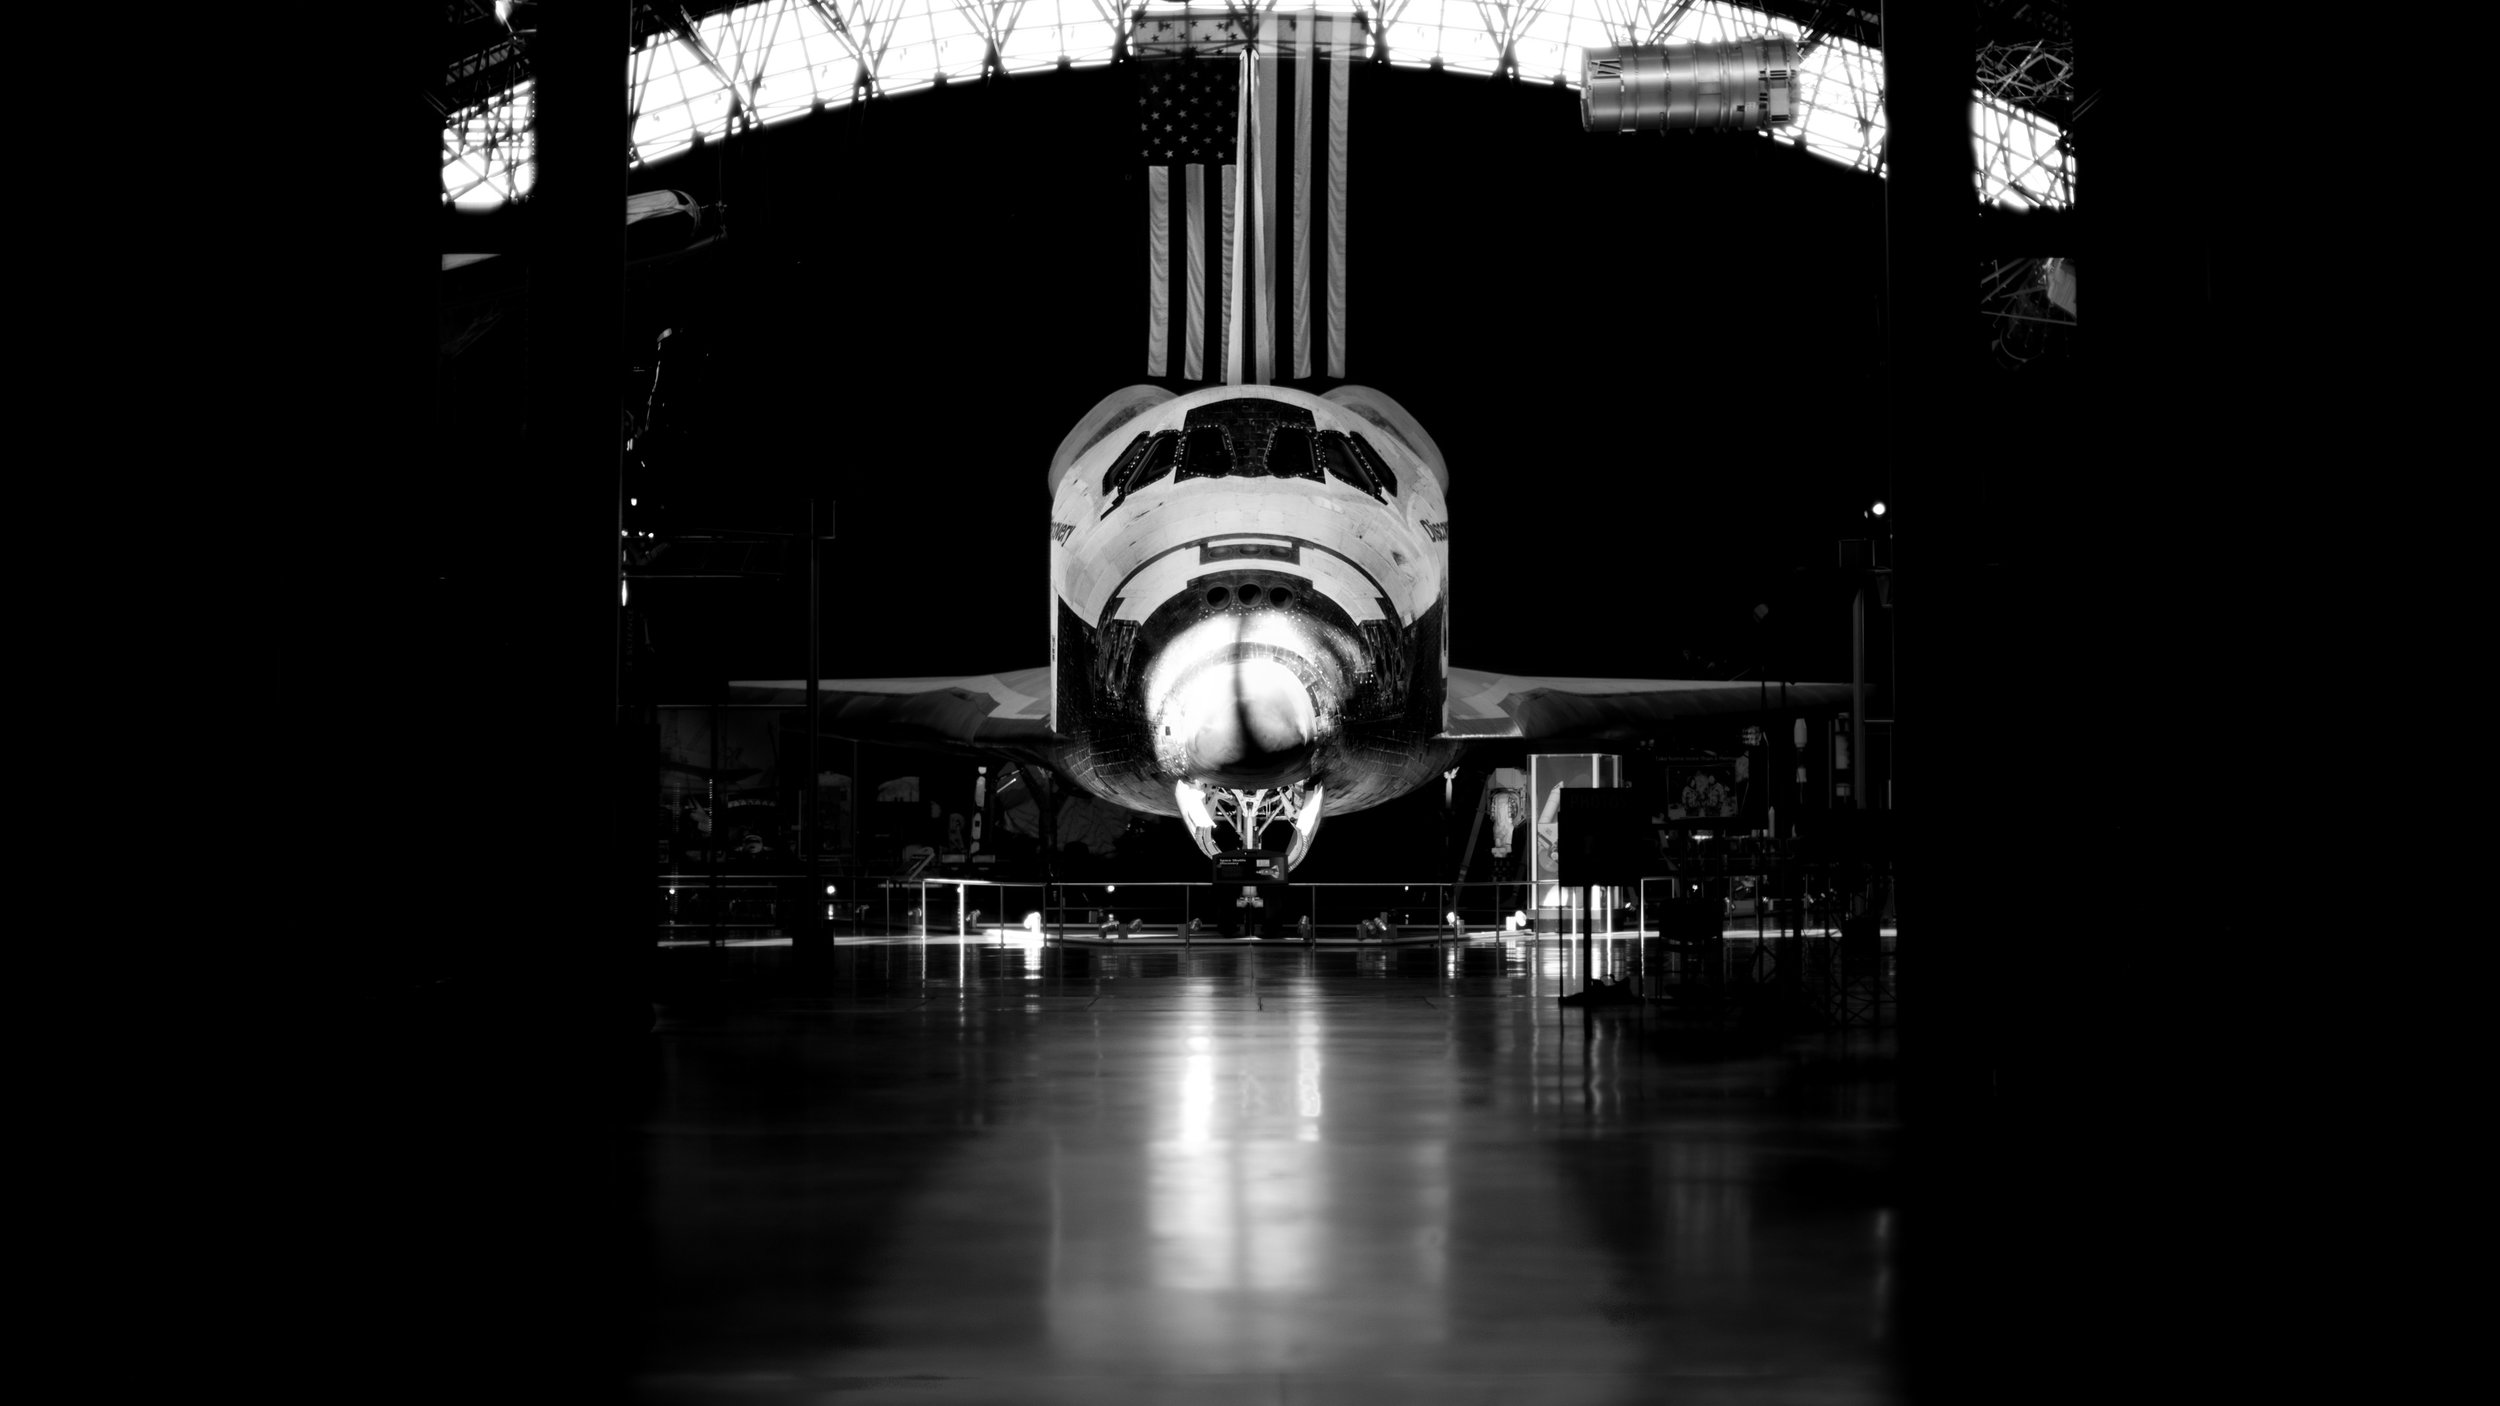 The space shuttle sitting alone in the hangar of the museum. I intentionally underexposed the image to isolate the subject - the morning light was perfect for capturing the shuttle in isolation.